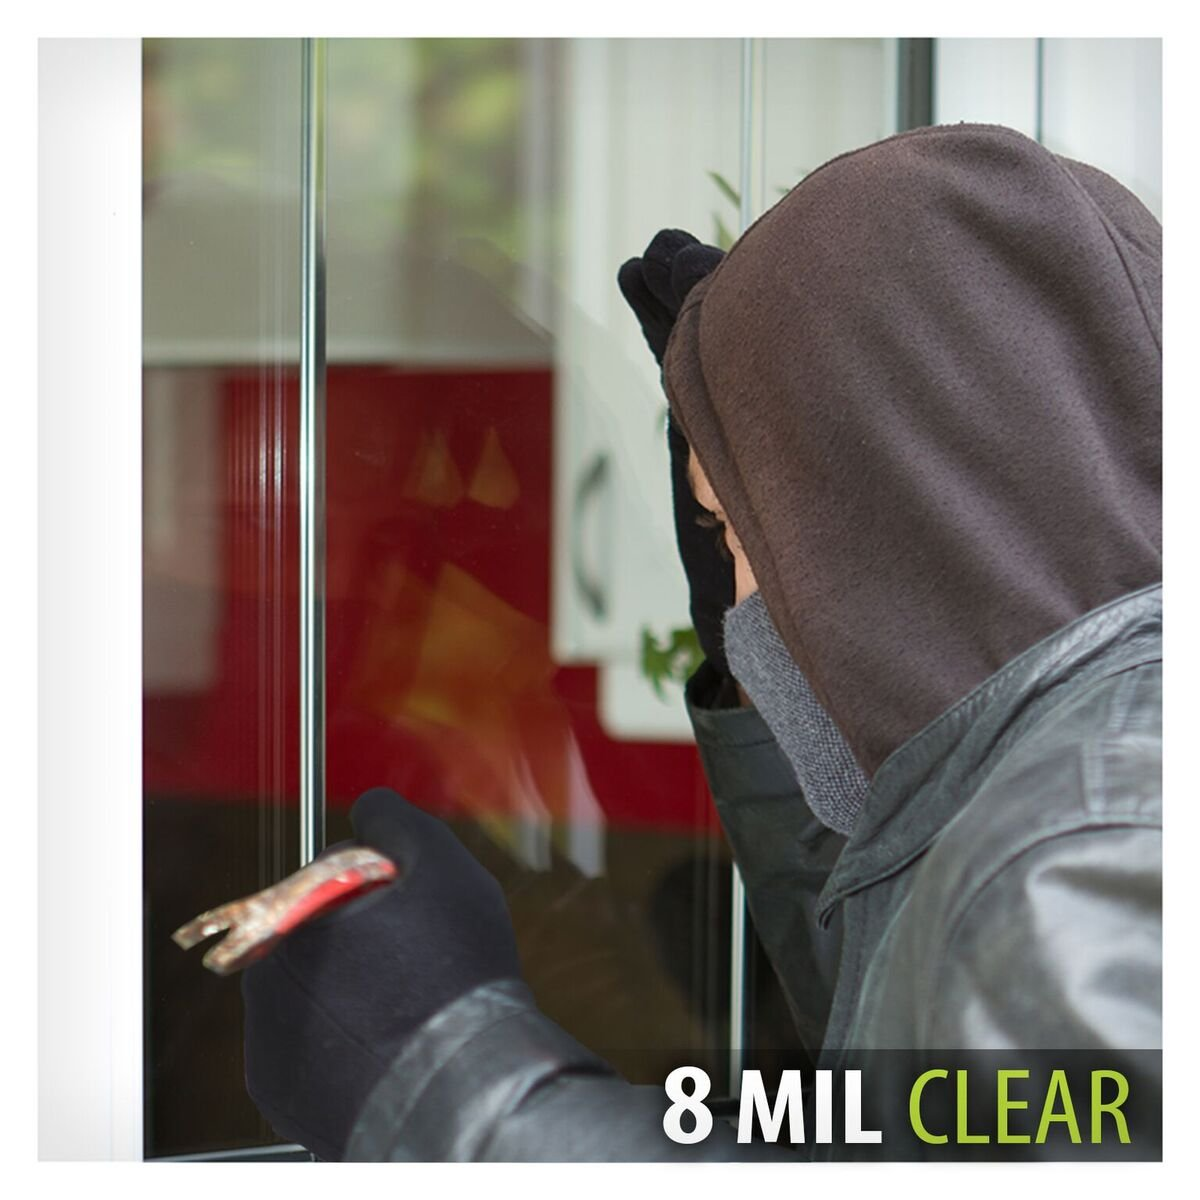 BDF S8MC Window Film Security and Safety Clear 8 Mil (30in X 12ft) by BuyDecorativeFilm() (Image #4)